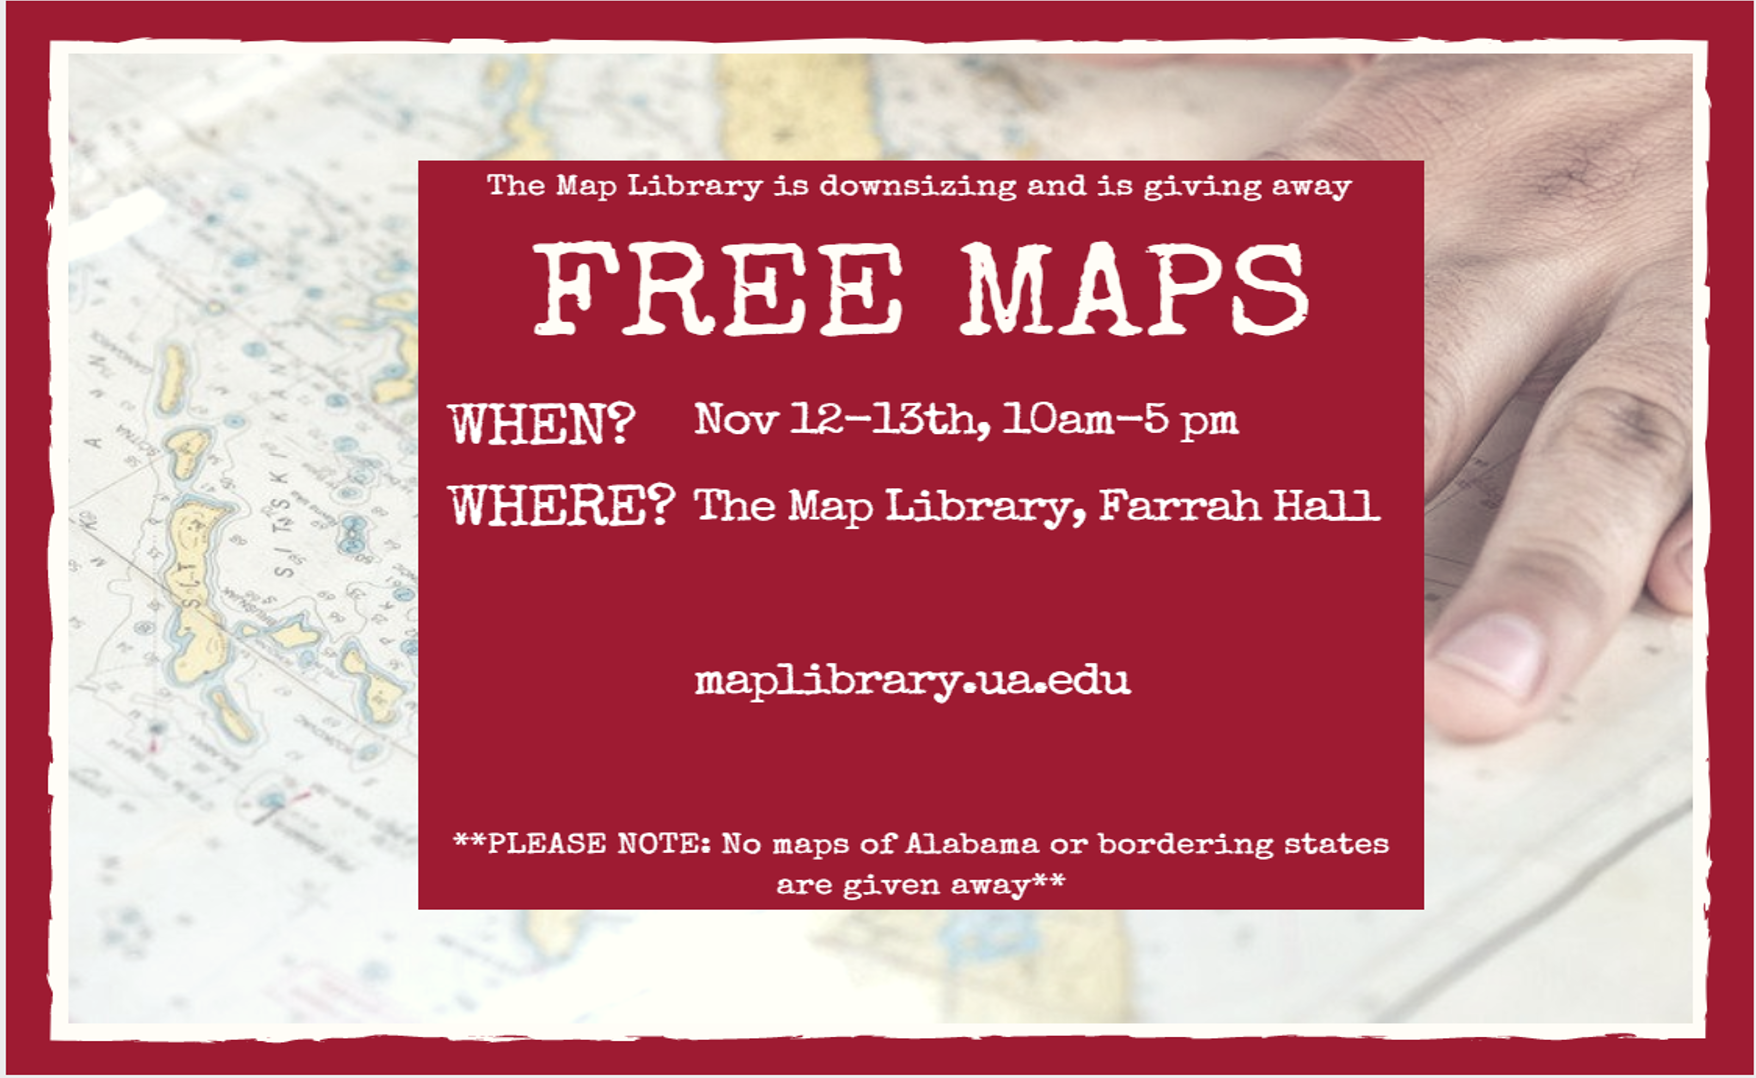 Map giveaway flyer